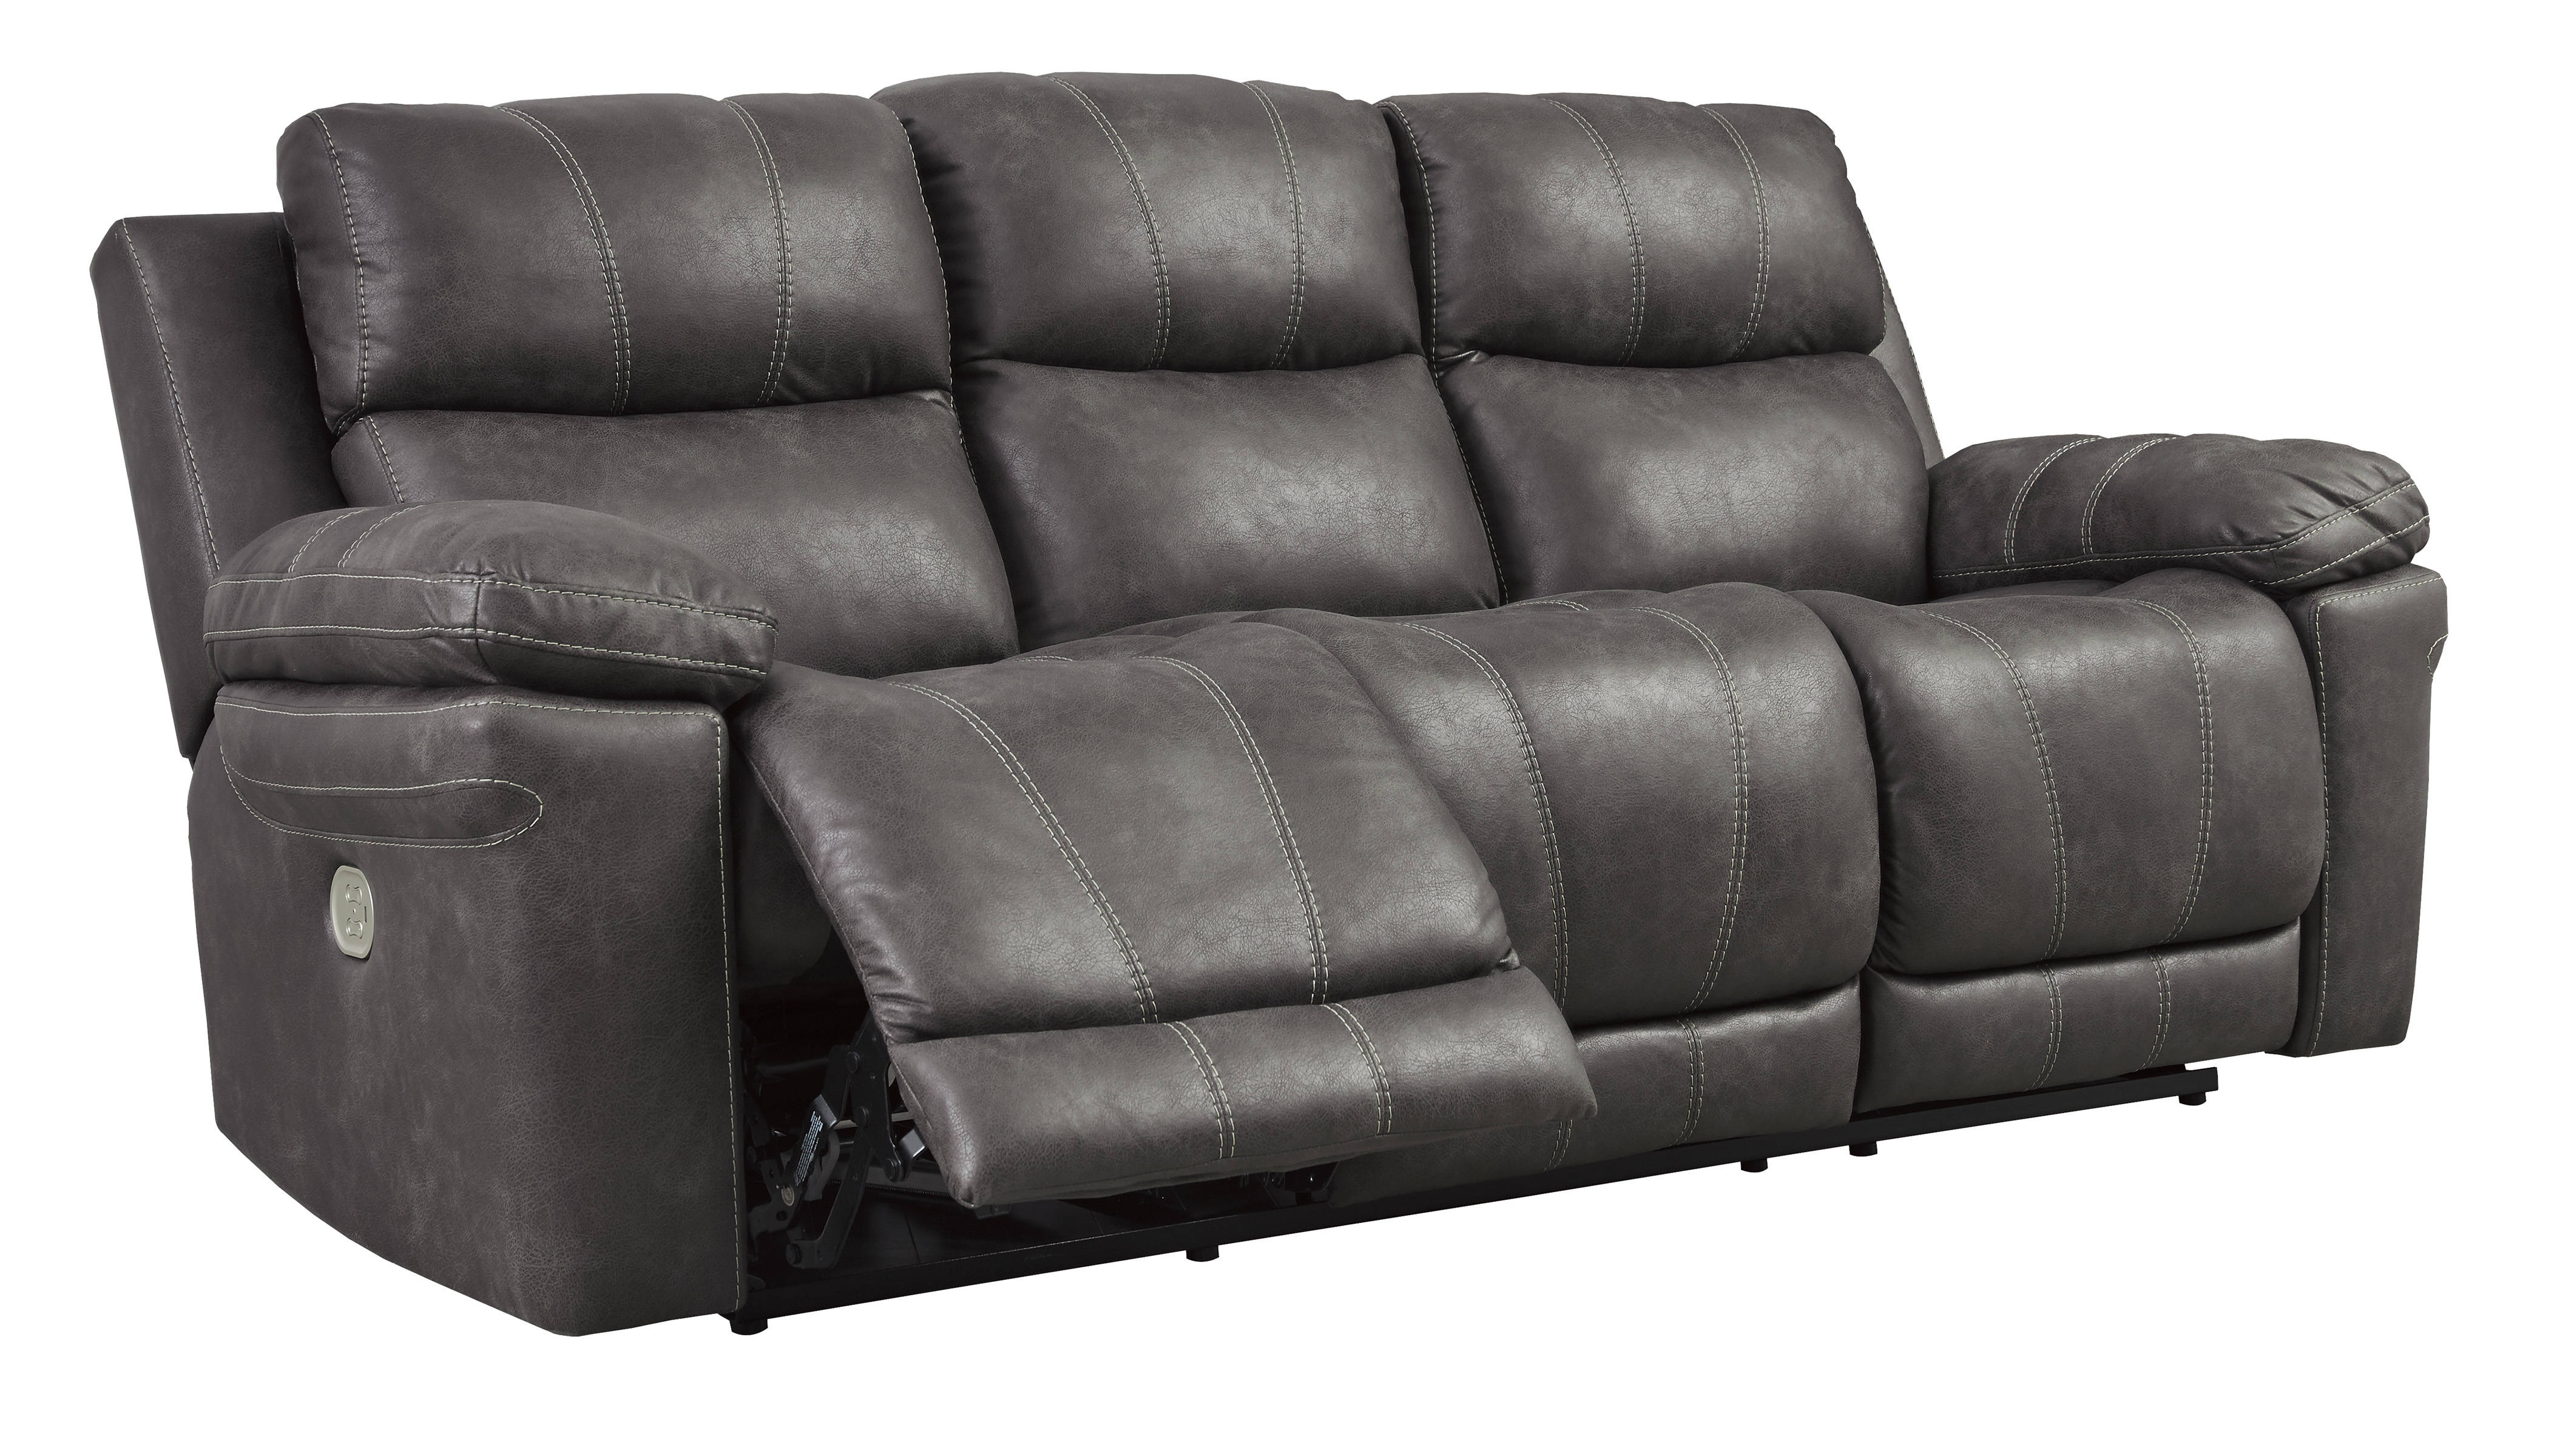 Enjoyable Ashley Furniture Erlangen Midnight Power Reclining Sofa With Adjustable Headrest Home Interior And Landscaping Mentranervesignezvosmurscom